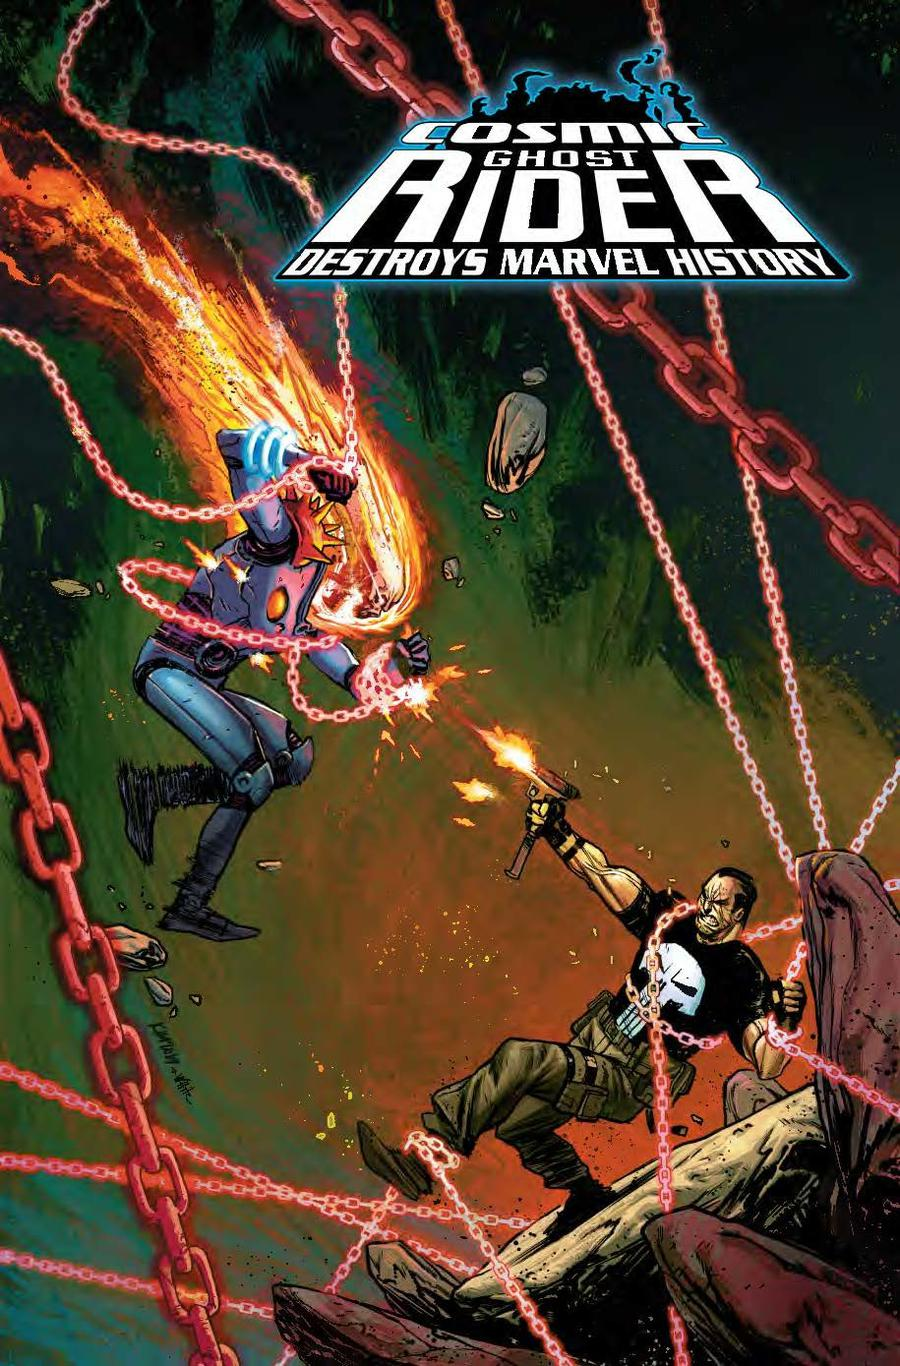 Cosmic Ghost Rider Destroys Marvel History #6 Cover B Variant Kim Jacinto Cover